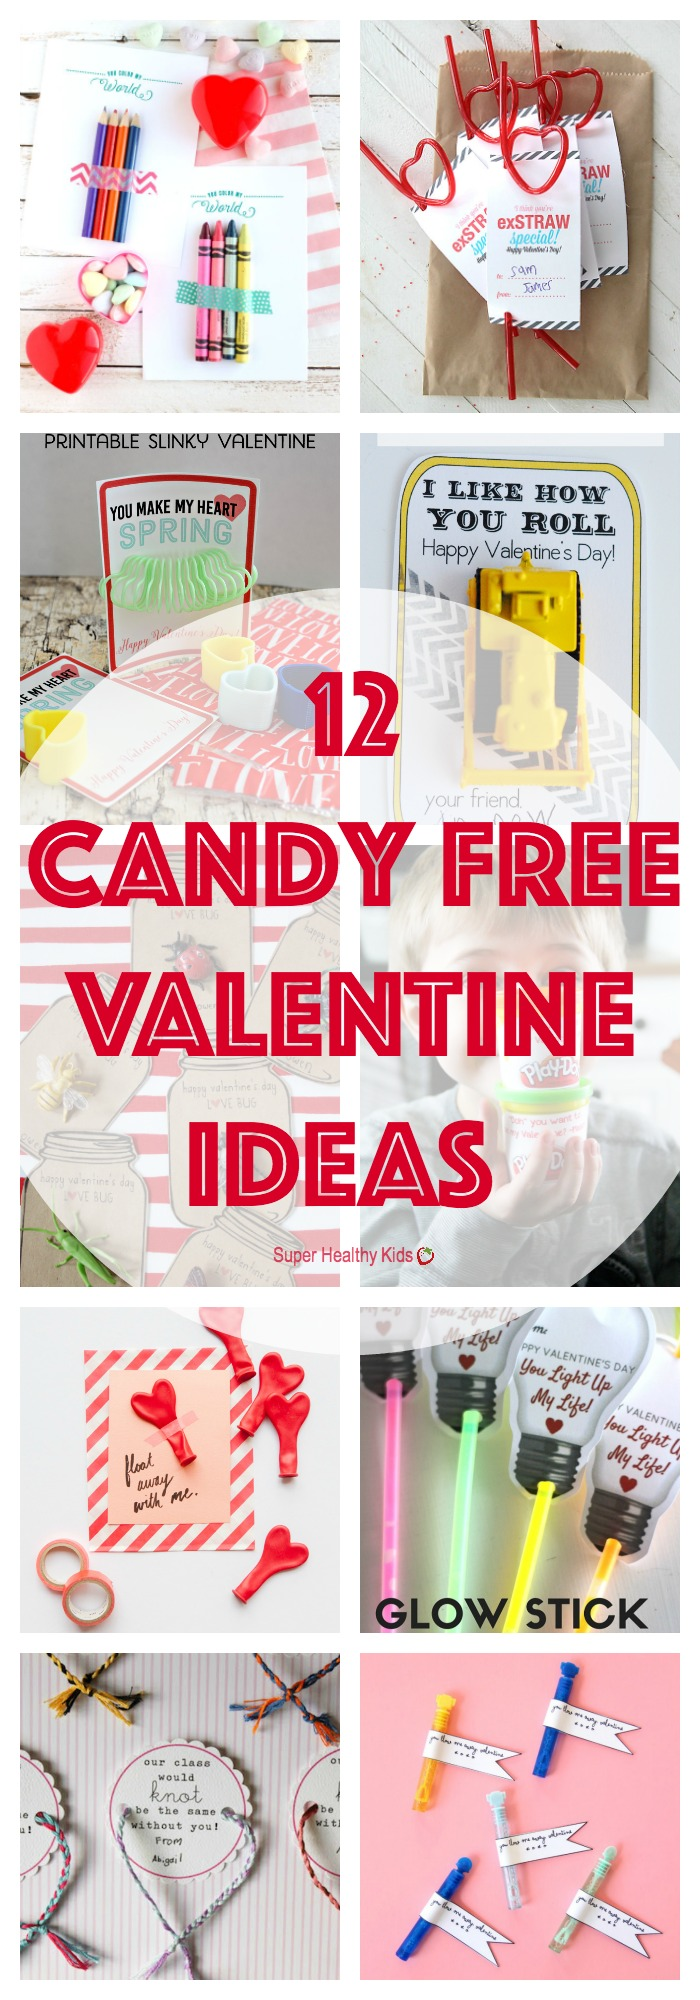 VALENTINE IDEAS - 12 Candy Free Valentine Ideas. Send your kiddo to school with one of these candy free treats this year! http://www.superhealthykids.com/12-candy-free-valentine-ideas/